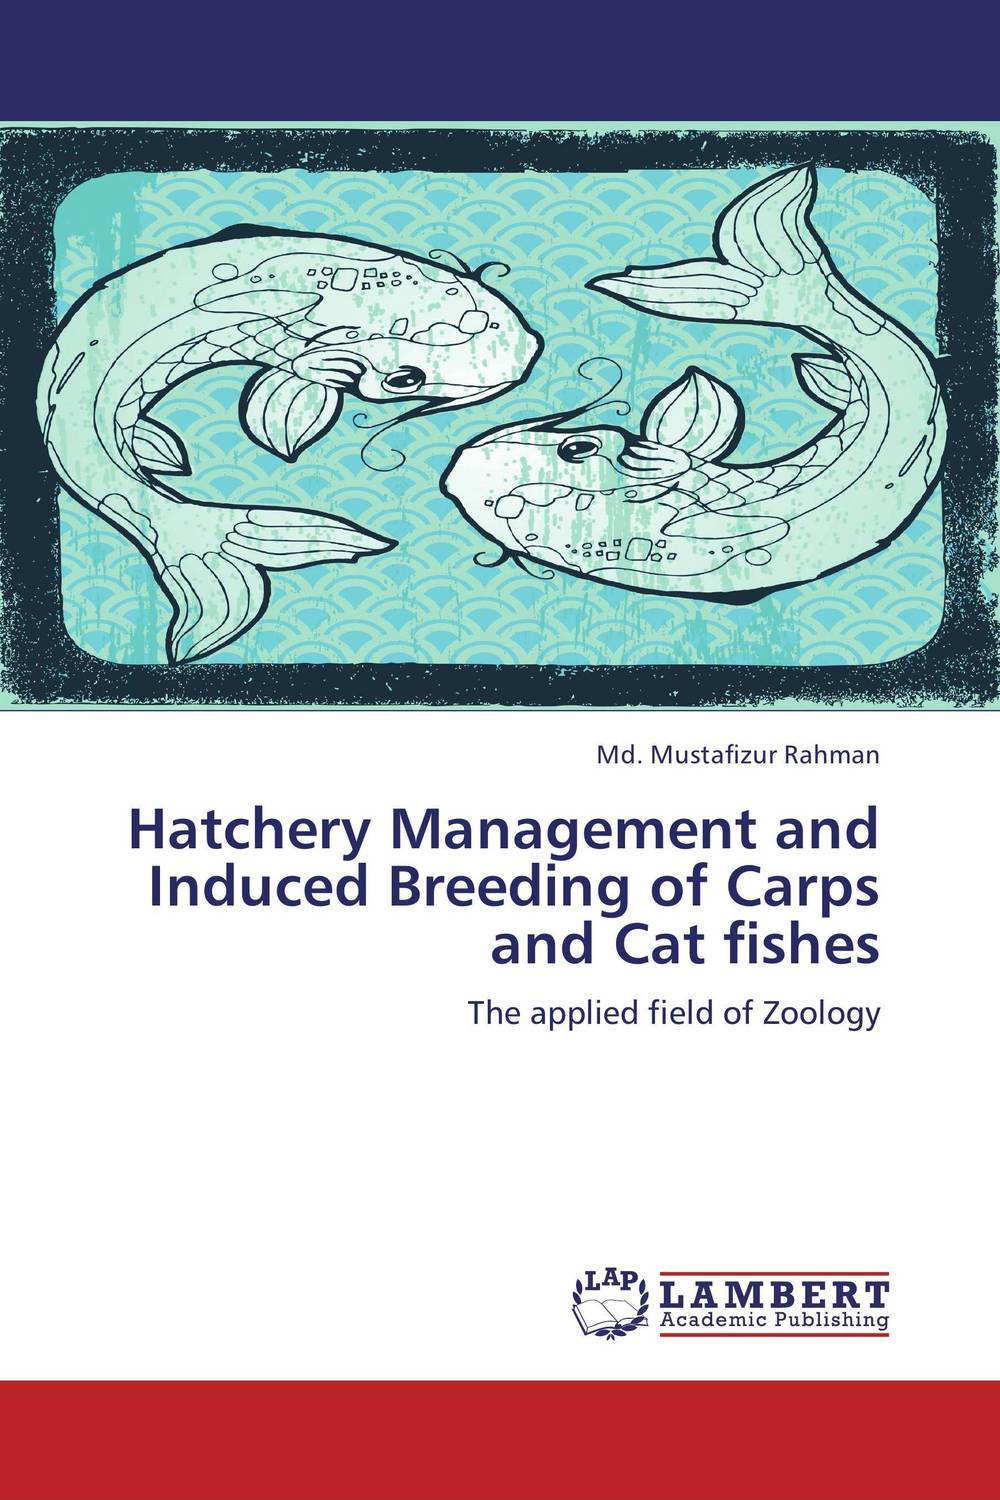 Hatchery Management and Induced Breeding of Carps and Cat fishes genotoxic potential in fishes